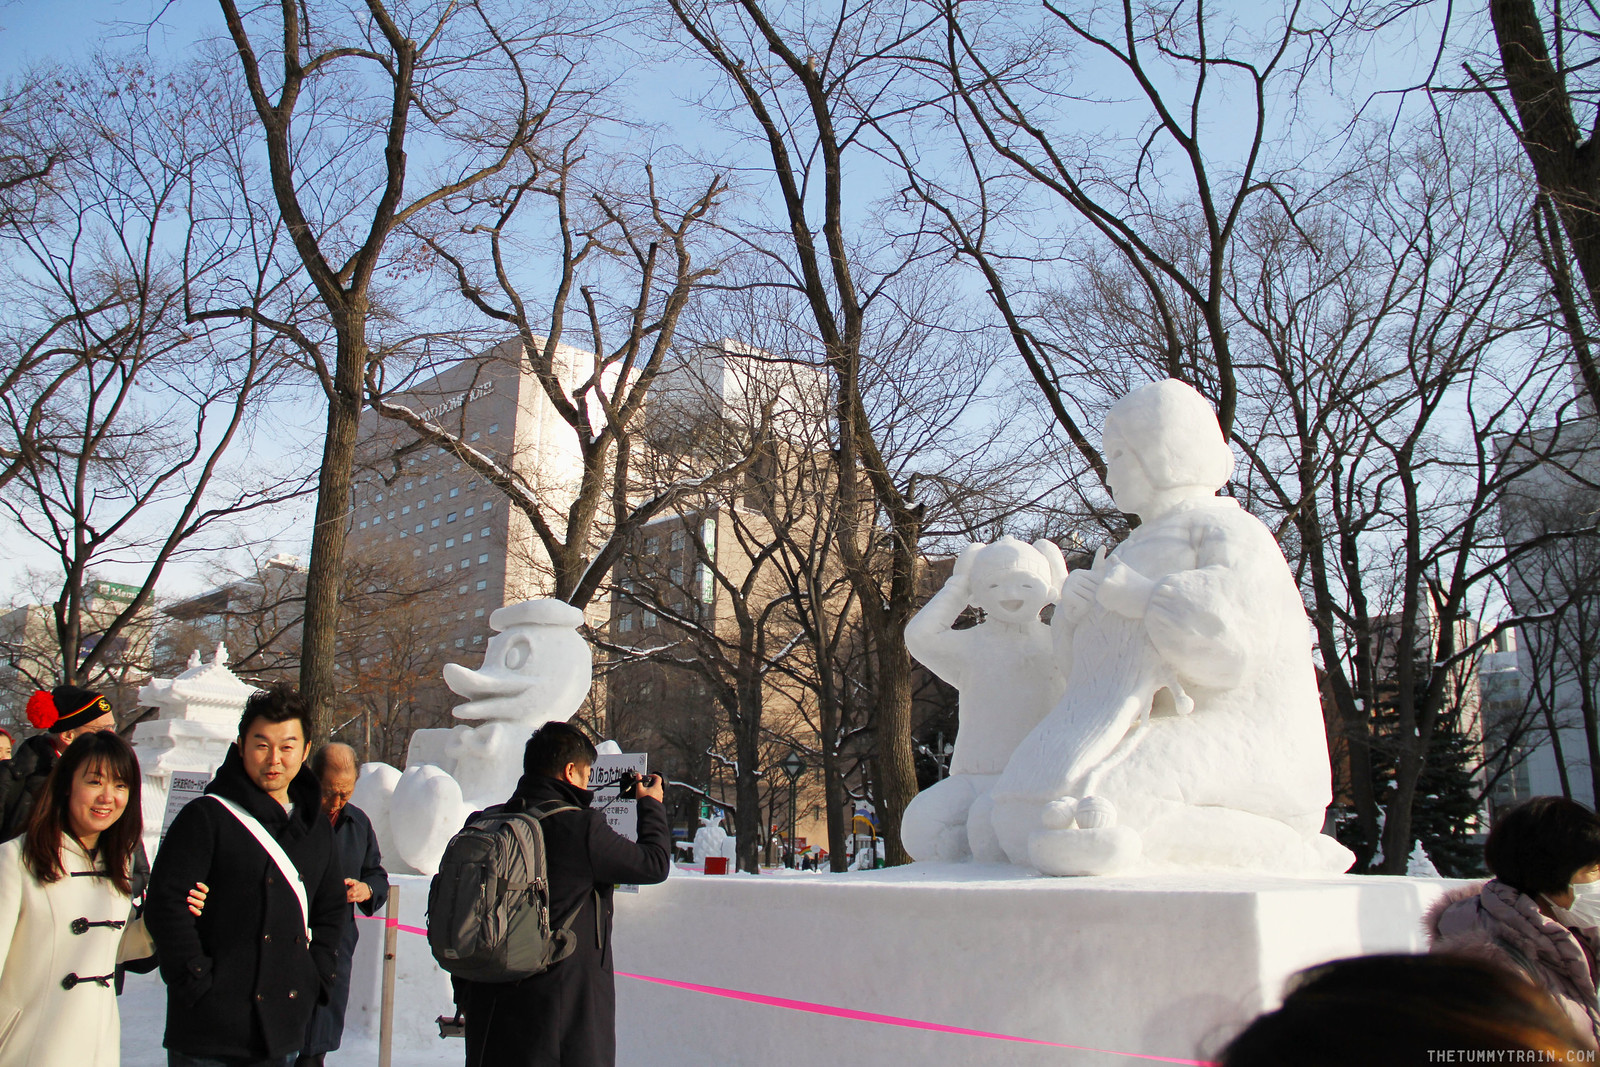 32876901676 6f7e42110d h - Sights, Sounds, and Smells at the 68th Sapporo Snow Festival at Odori Park